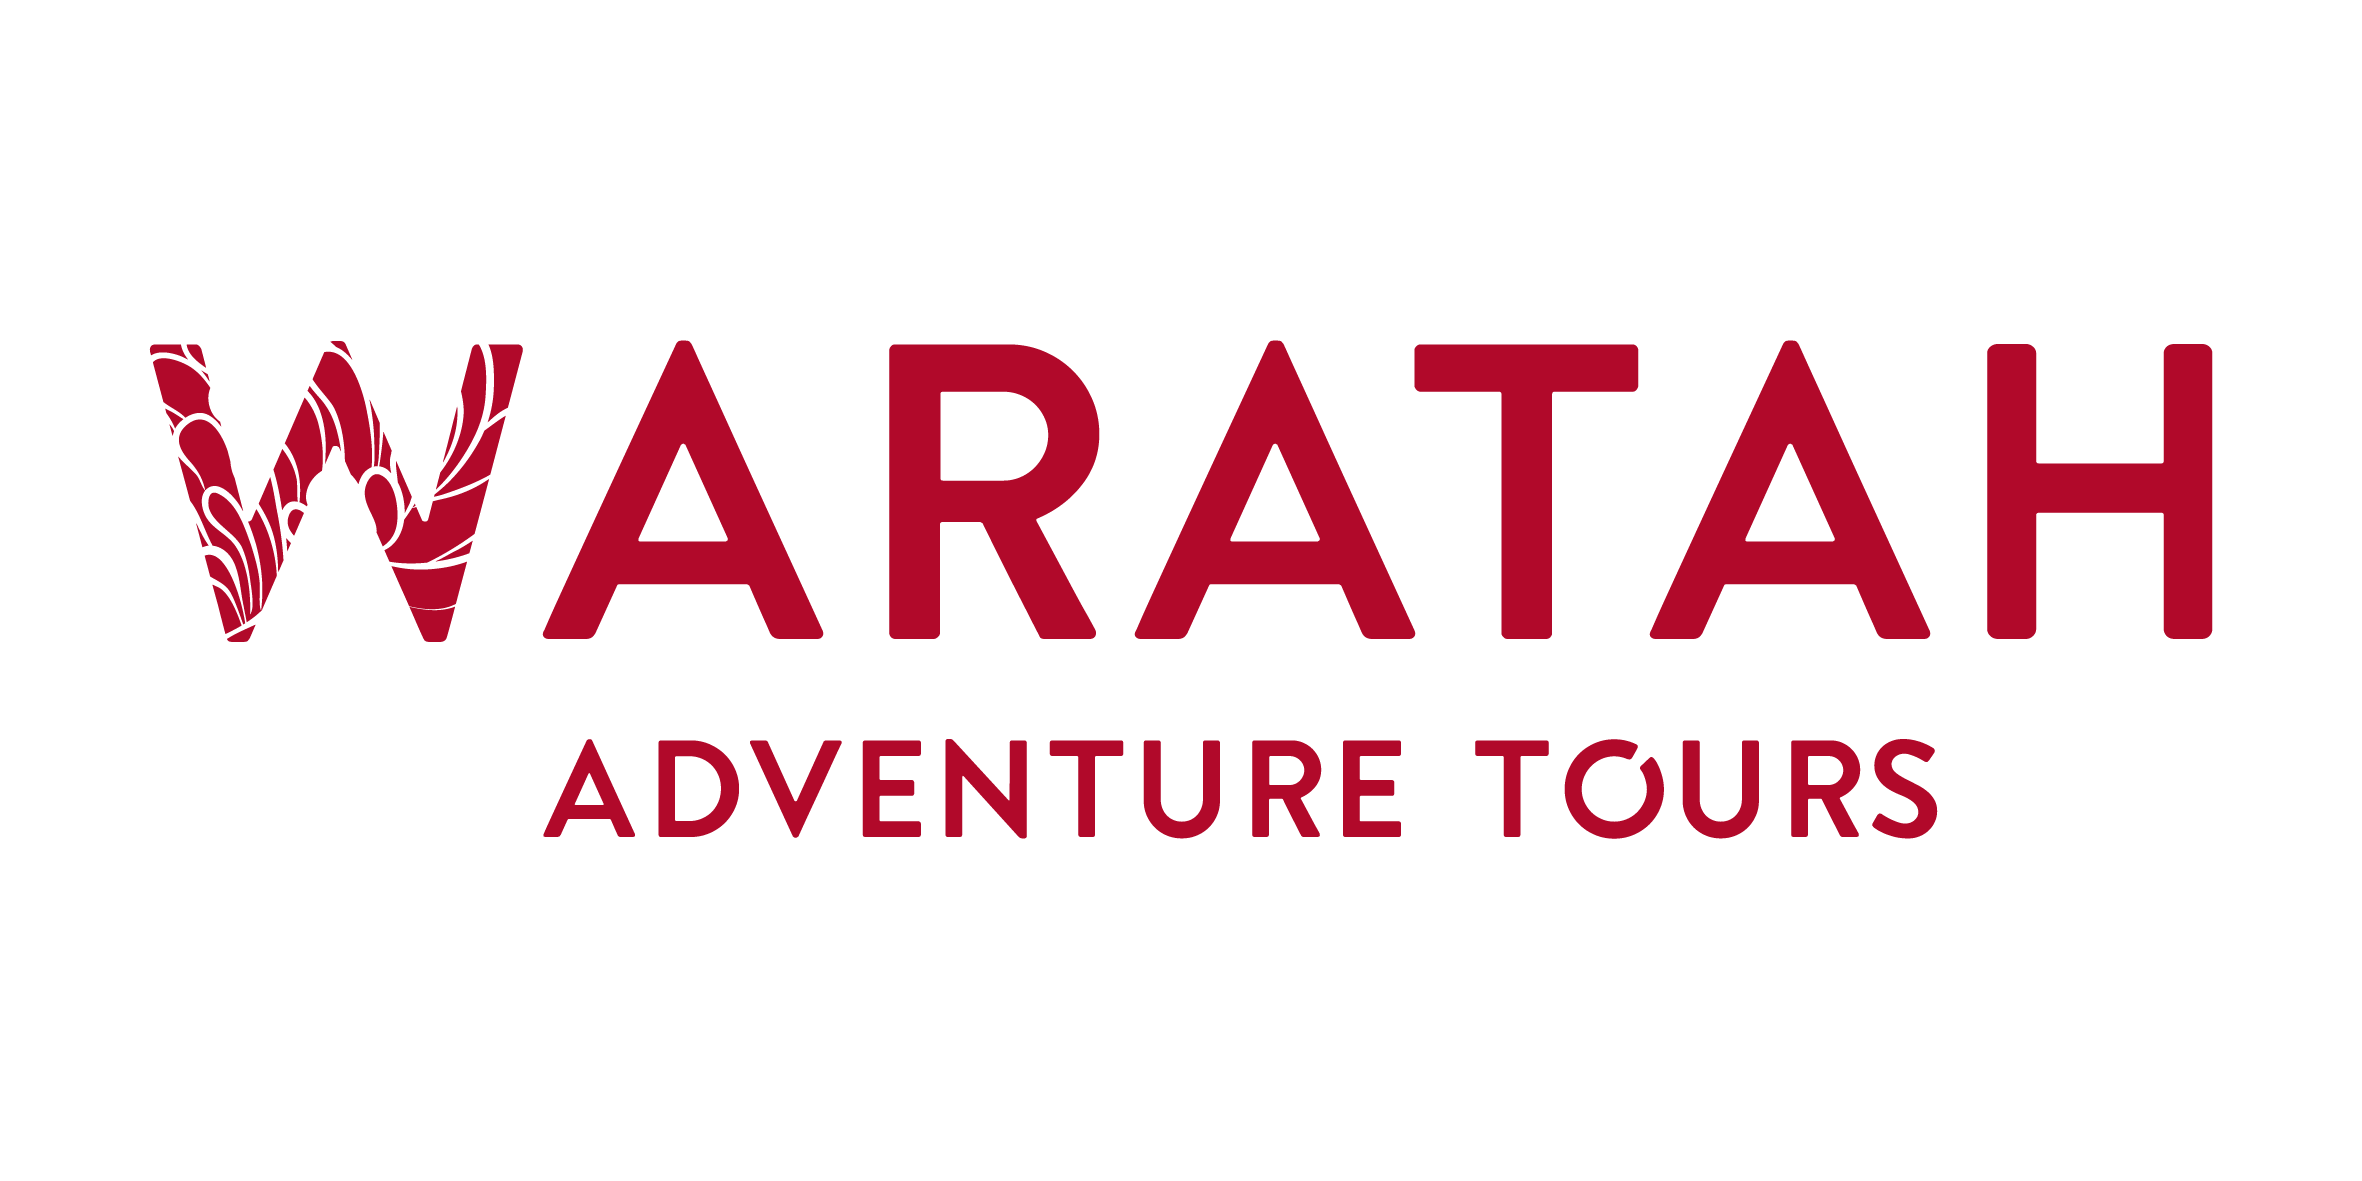 Waratah Adventure Tours - Nature and Experiential Tours